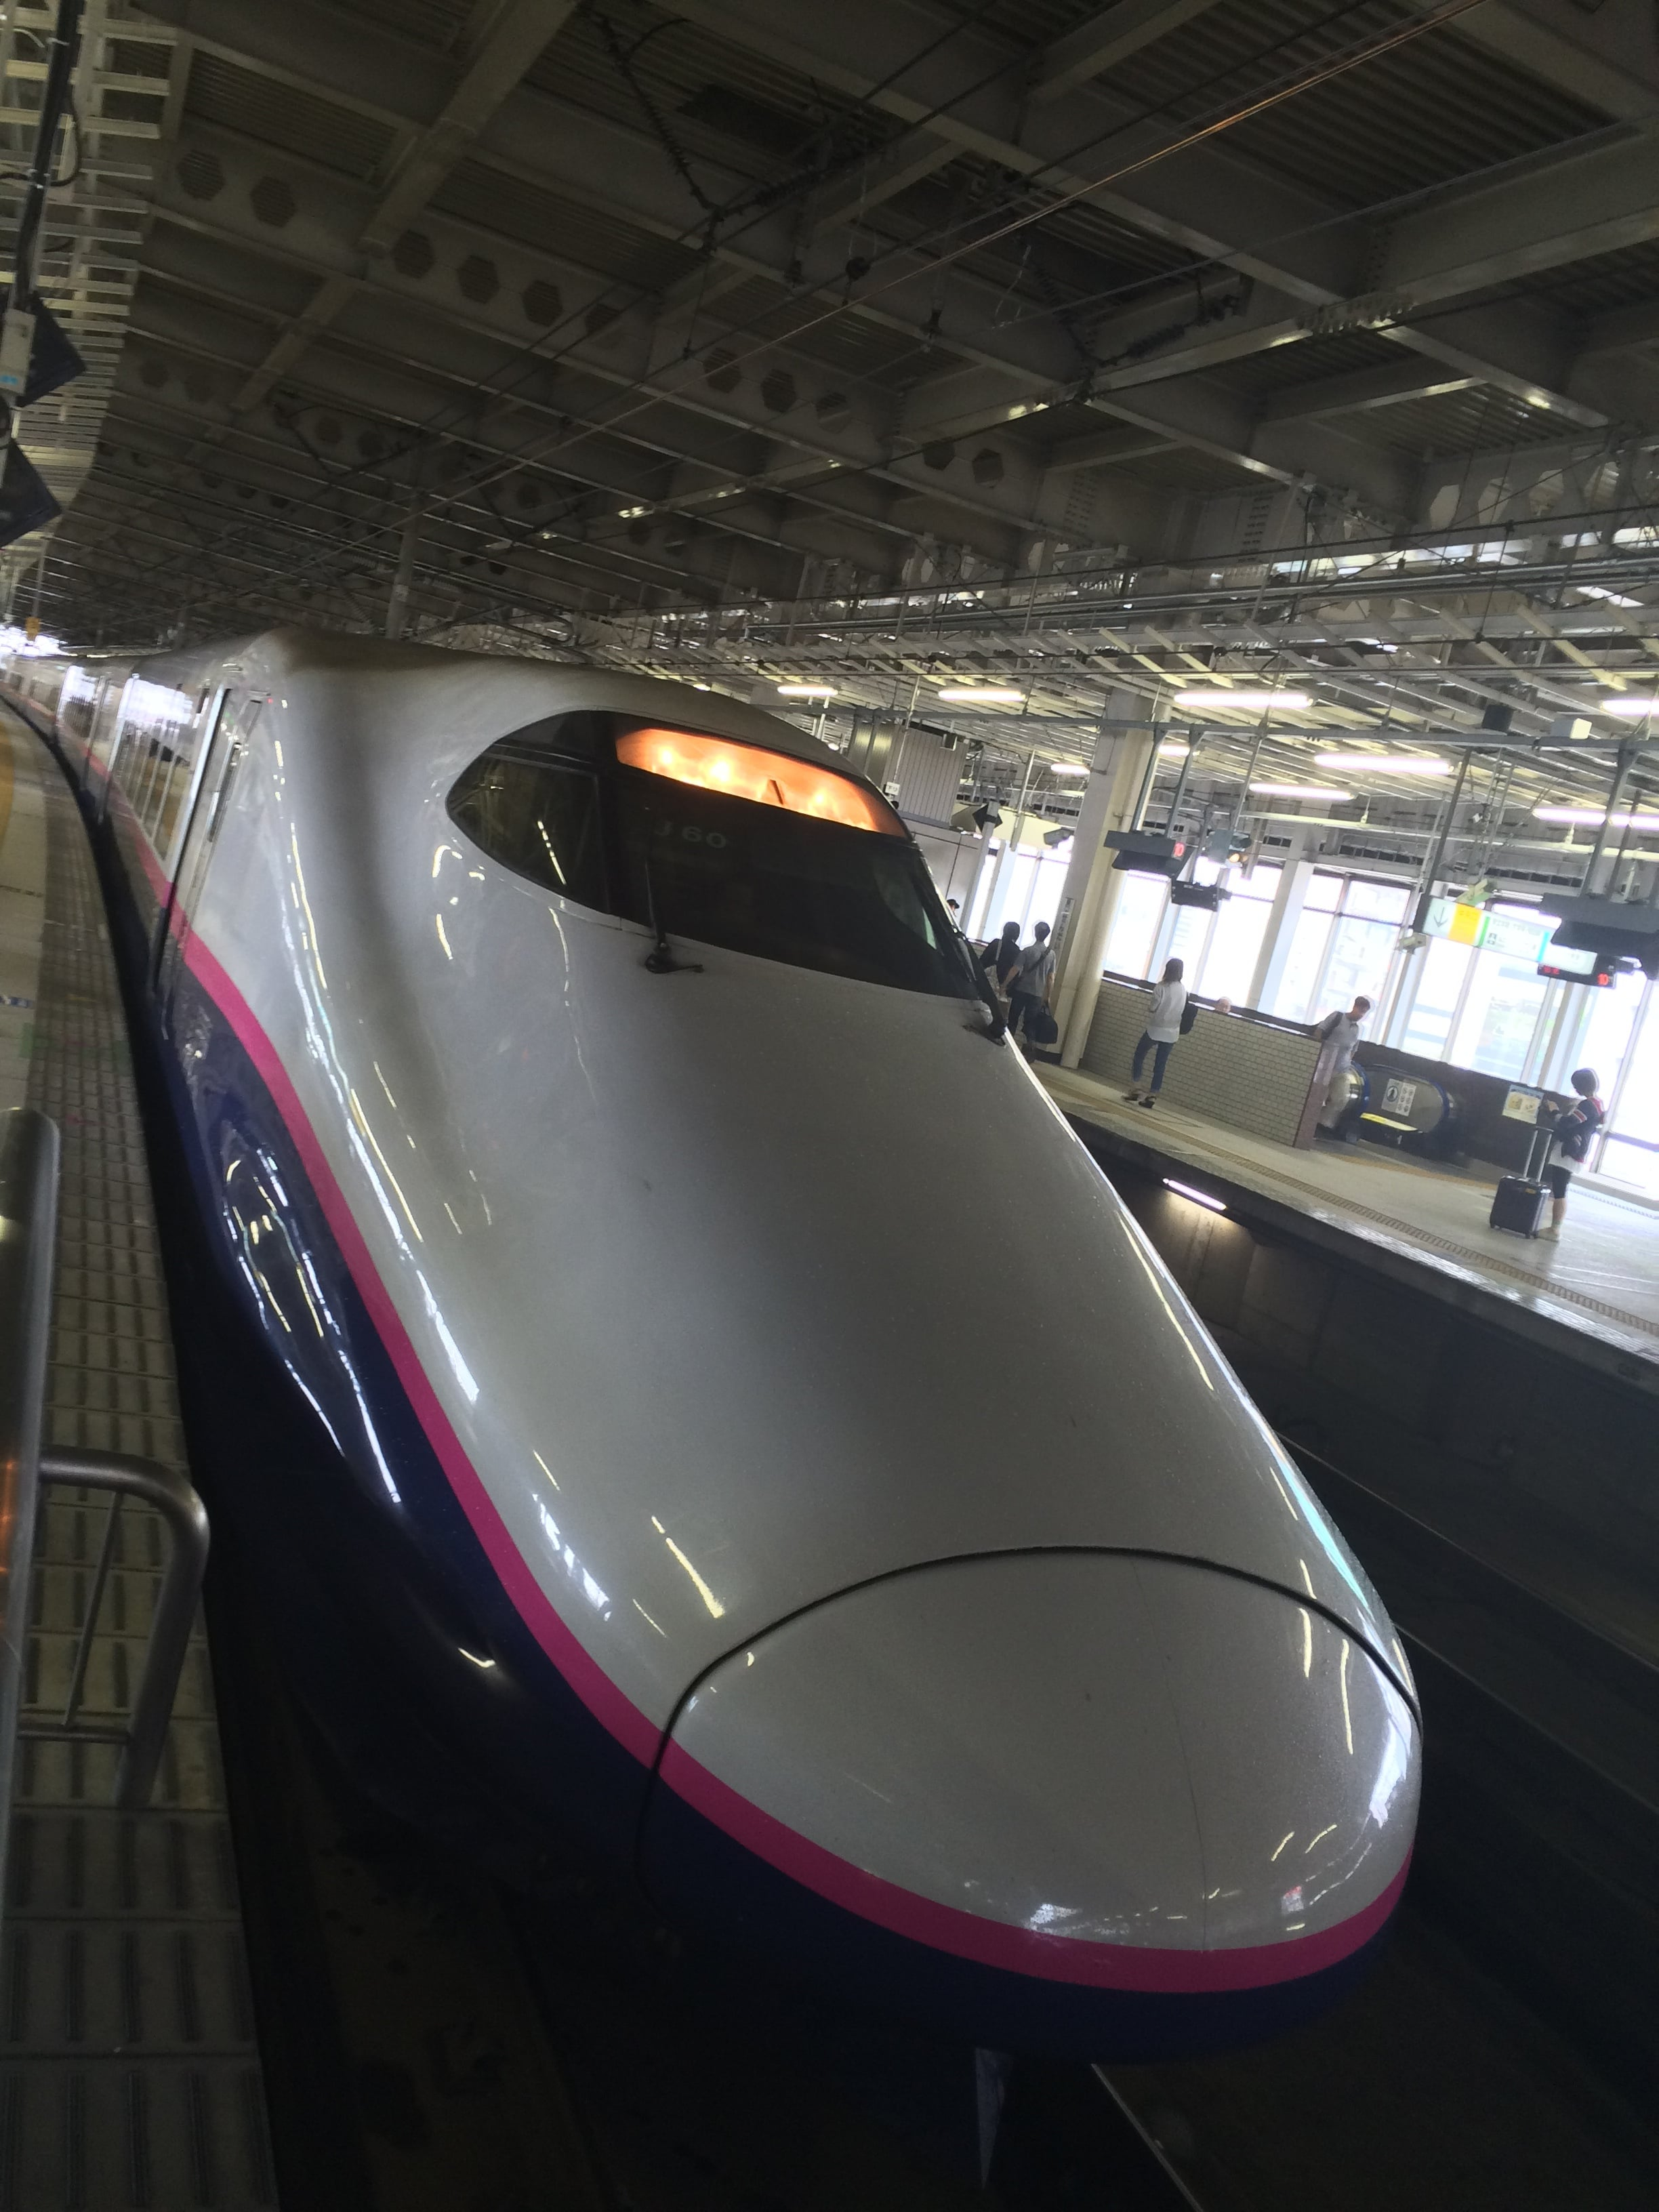 The front of our bullet train, which whisked us from Sendai to Tokyo (just under 250 miles)in less than 90 minutes.